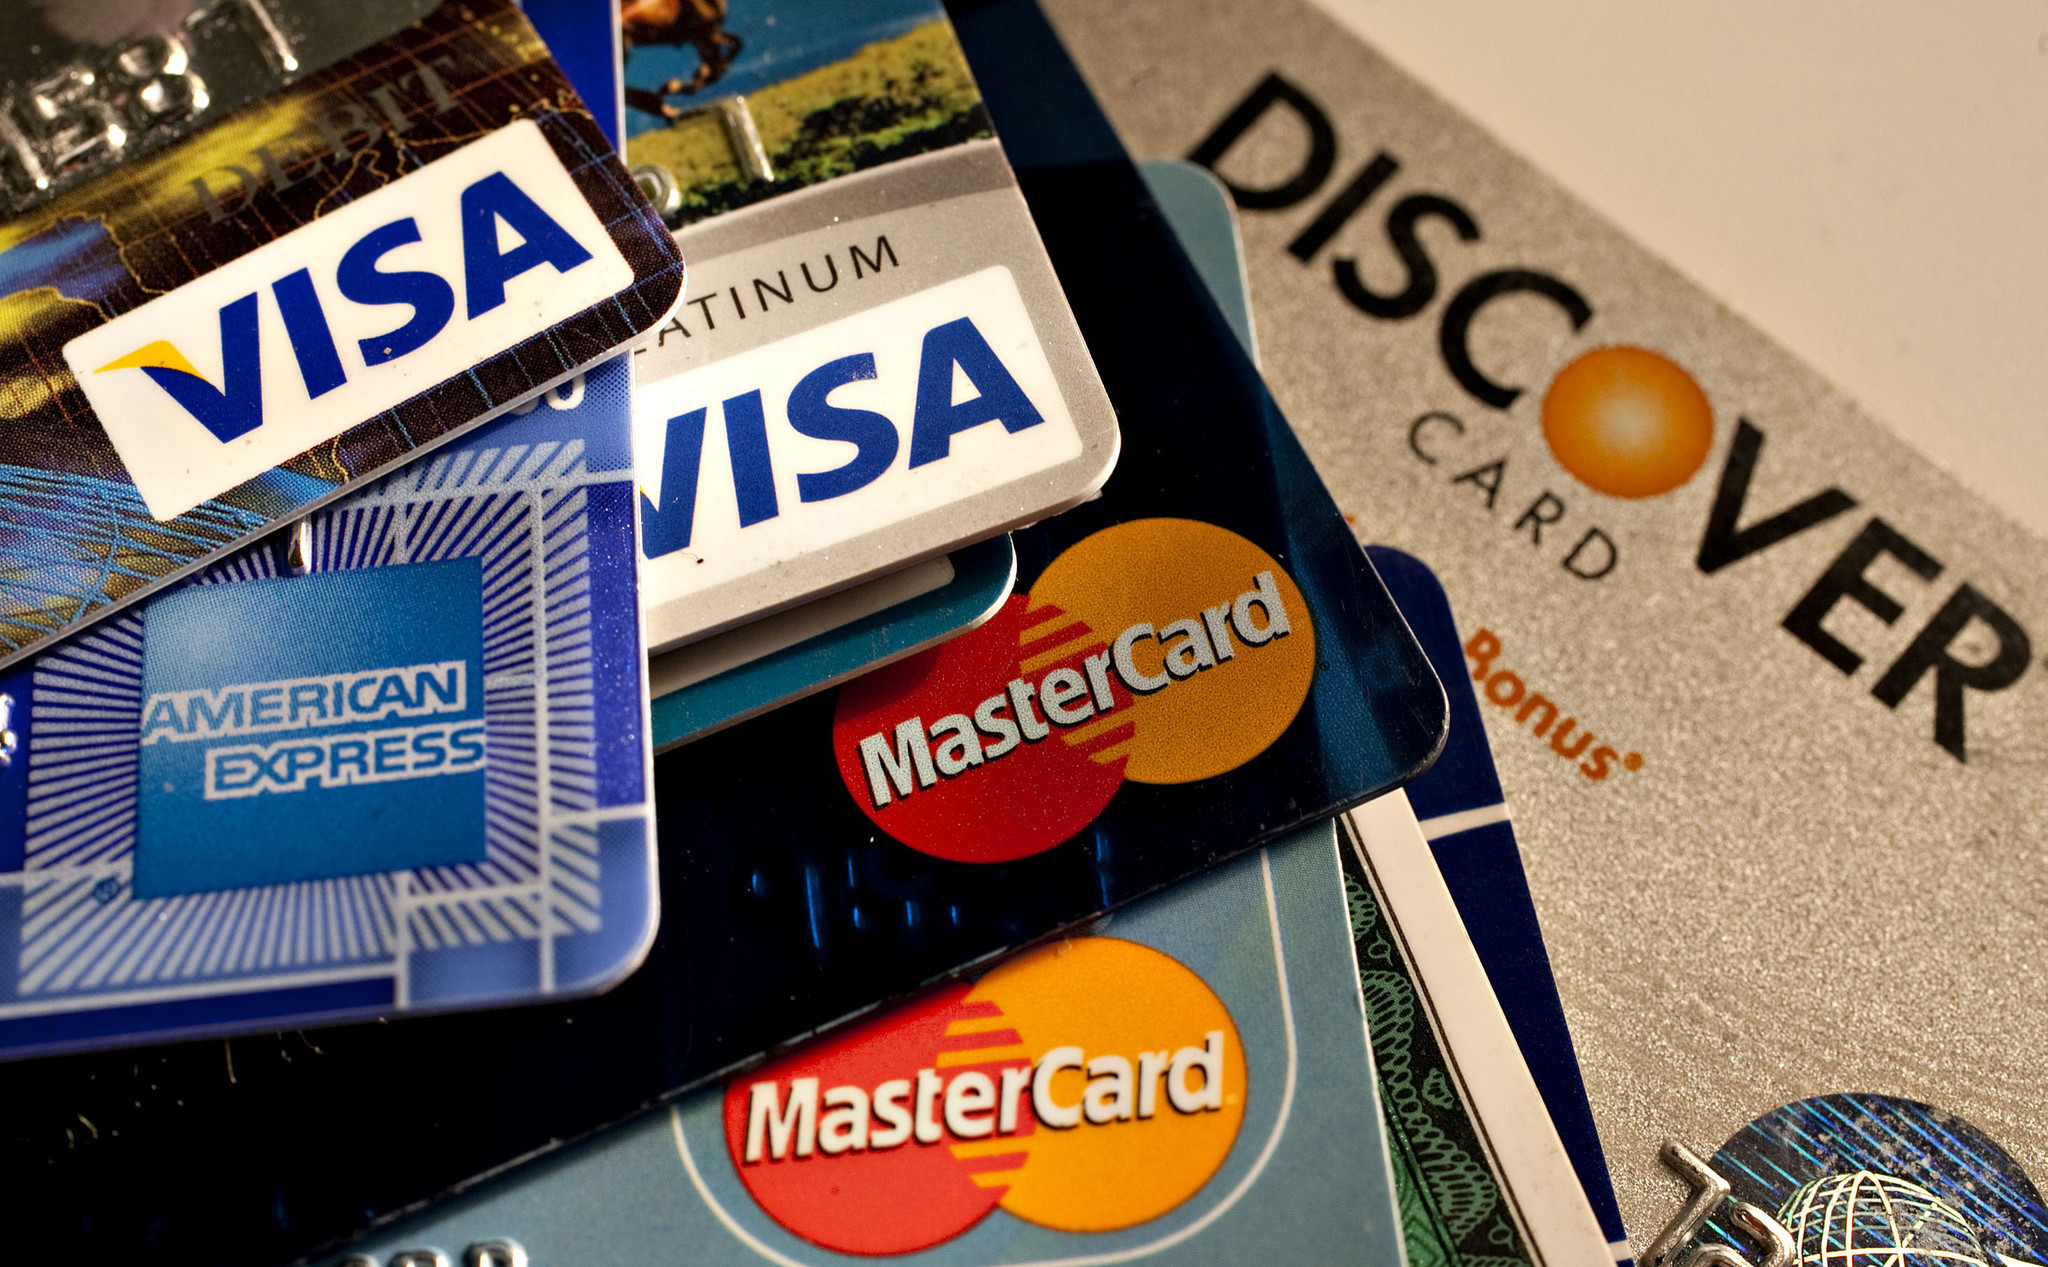 Lower Credit Card Interest Rate Waived Fees Key Is Just Asking Chicago Tribune